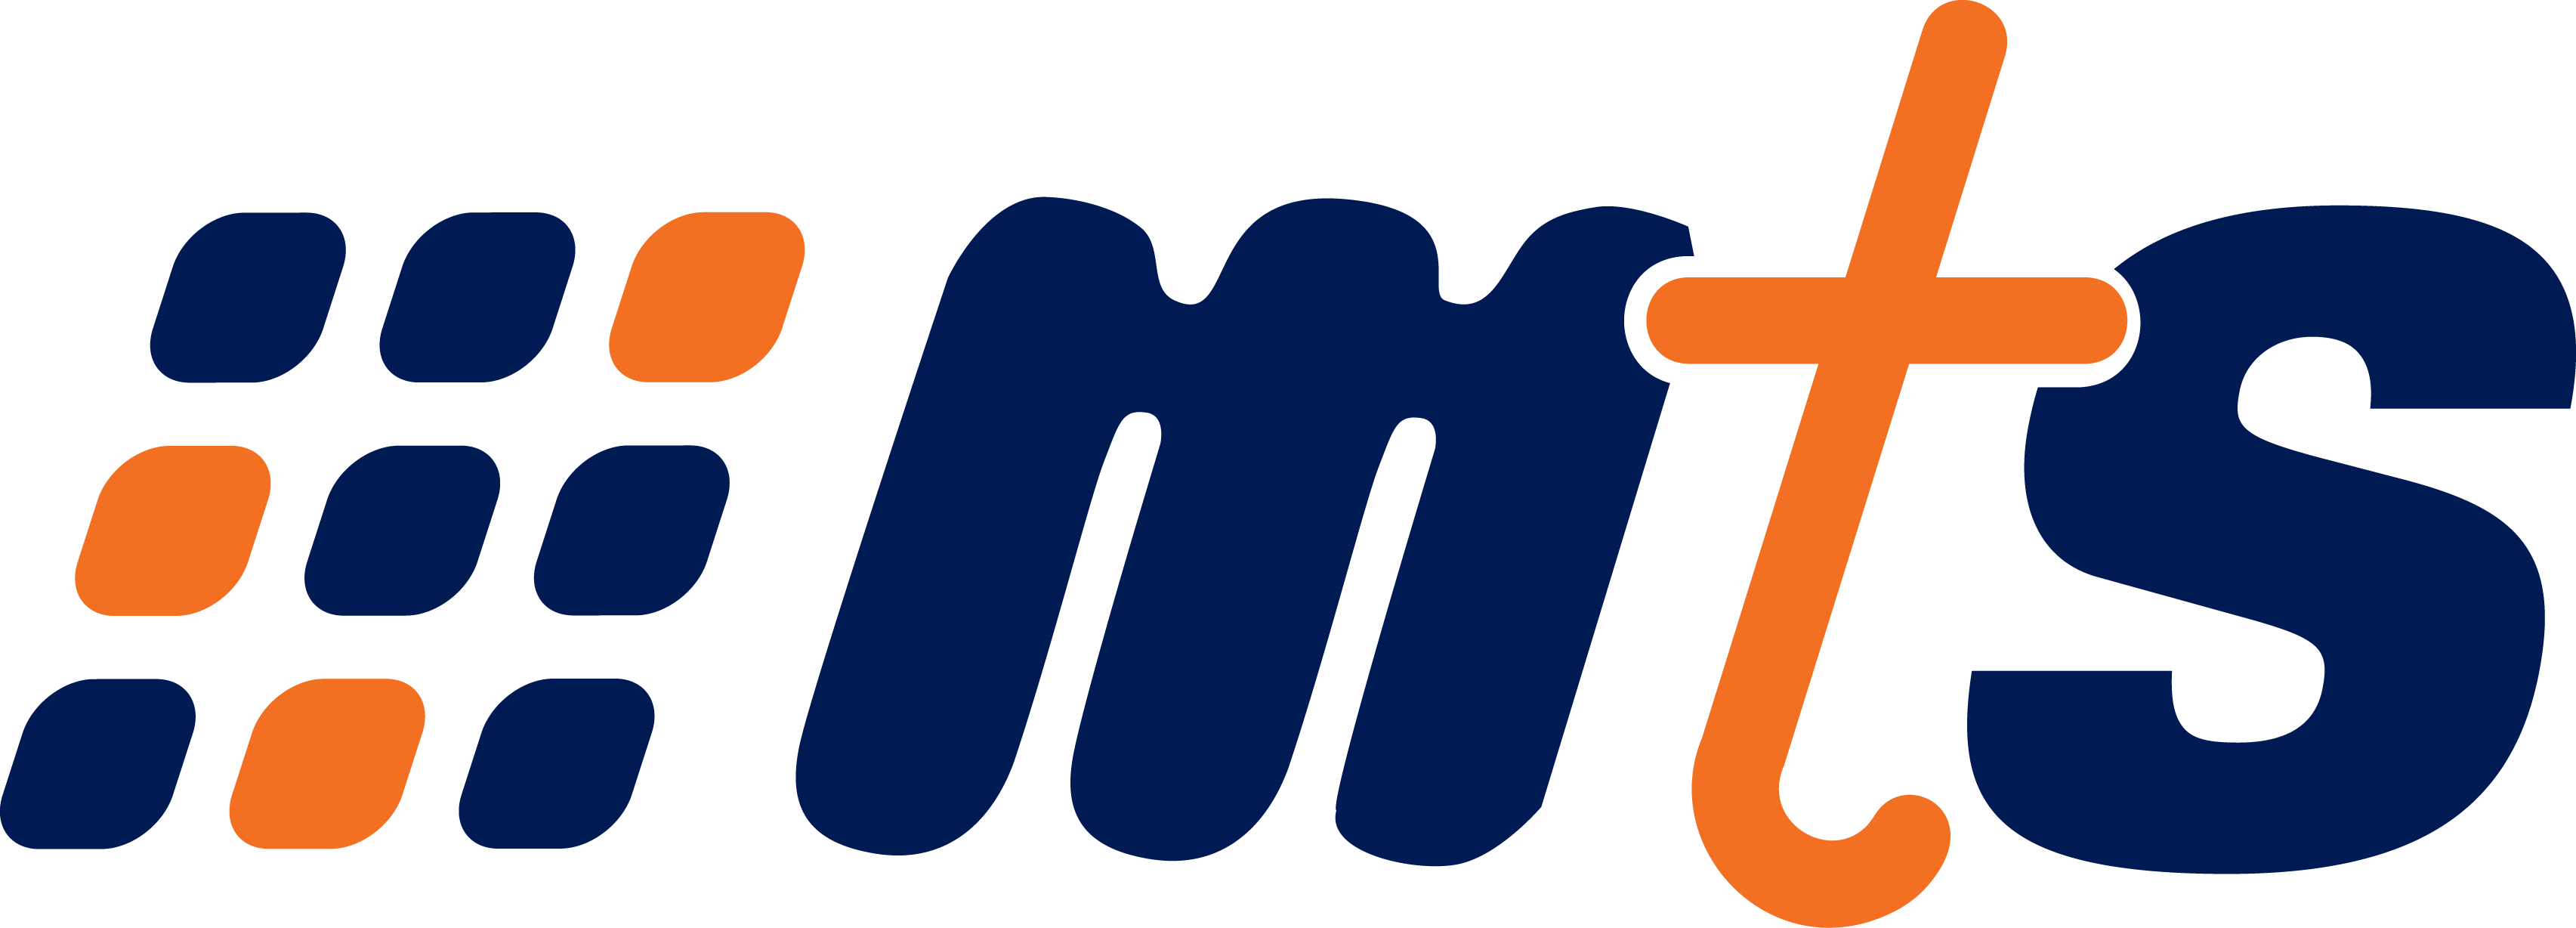 MTS_Logos_high_res2013.png